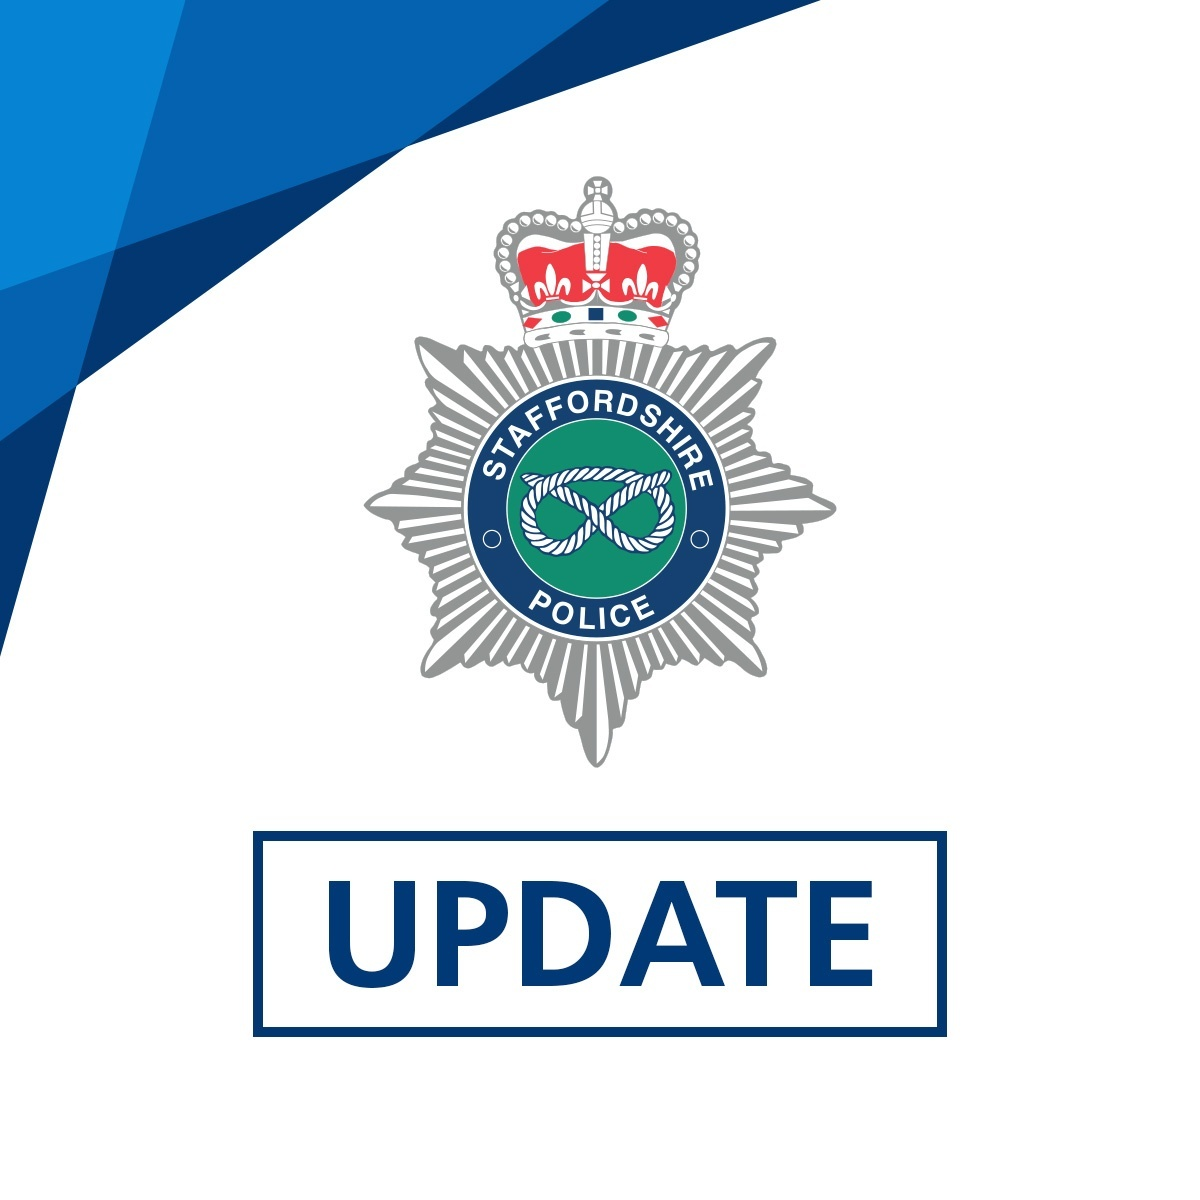 We were called at 6.40pm this evening (Sept 24) to reports that a child had been seriously injured during an activity in the Snow Dome in Tamworth. Sadly, the boy, aged 12, died of his injuries shortly afterwards. Our thoughts are with his family. orlo.uk/8zNBk